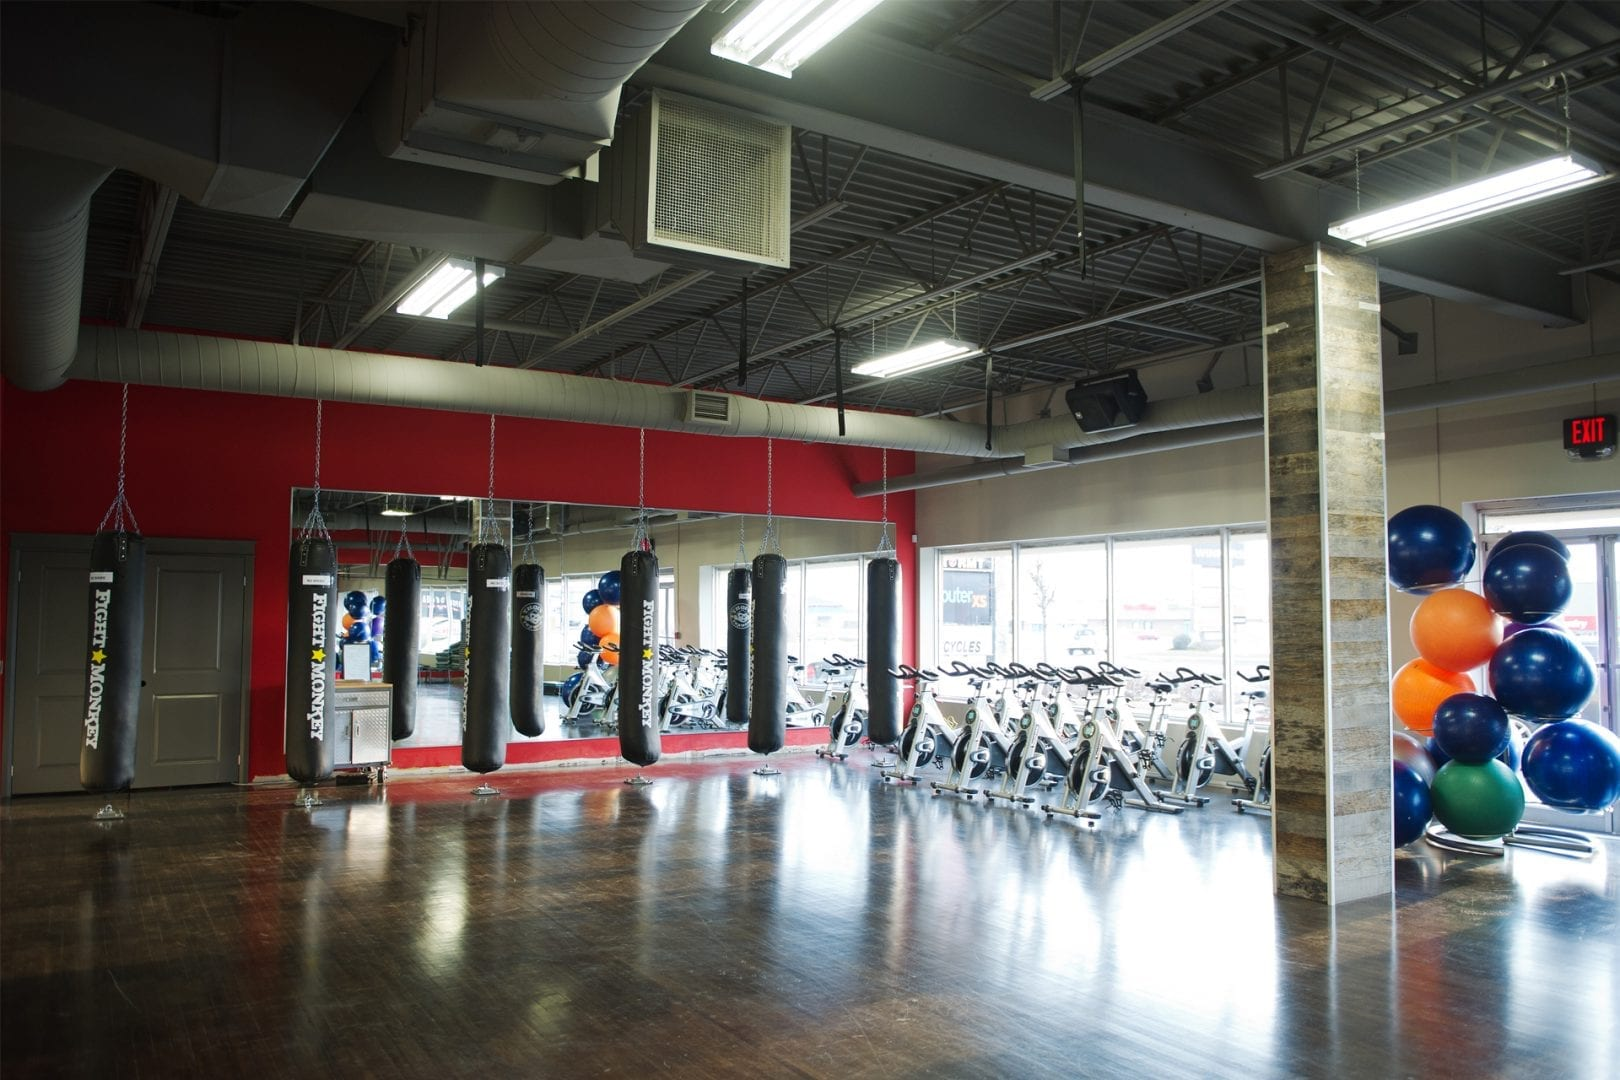 boxing-bags-fitness-balls-stationary-bicycles-in-gym